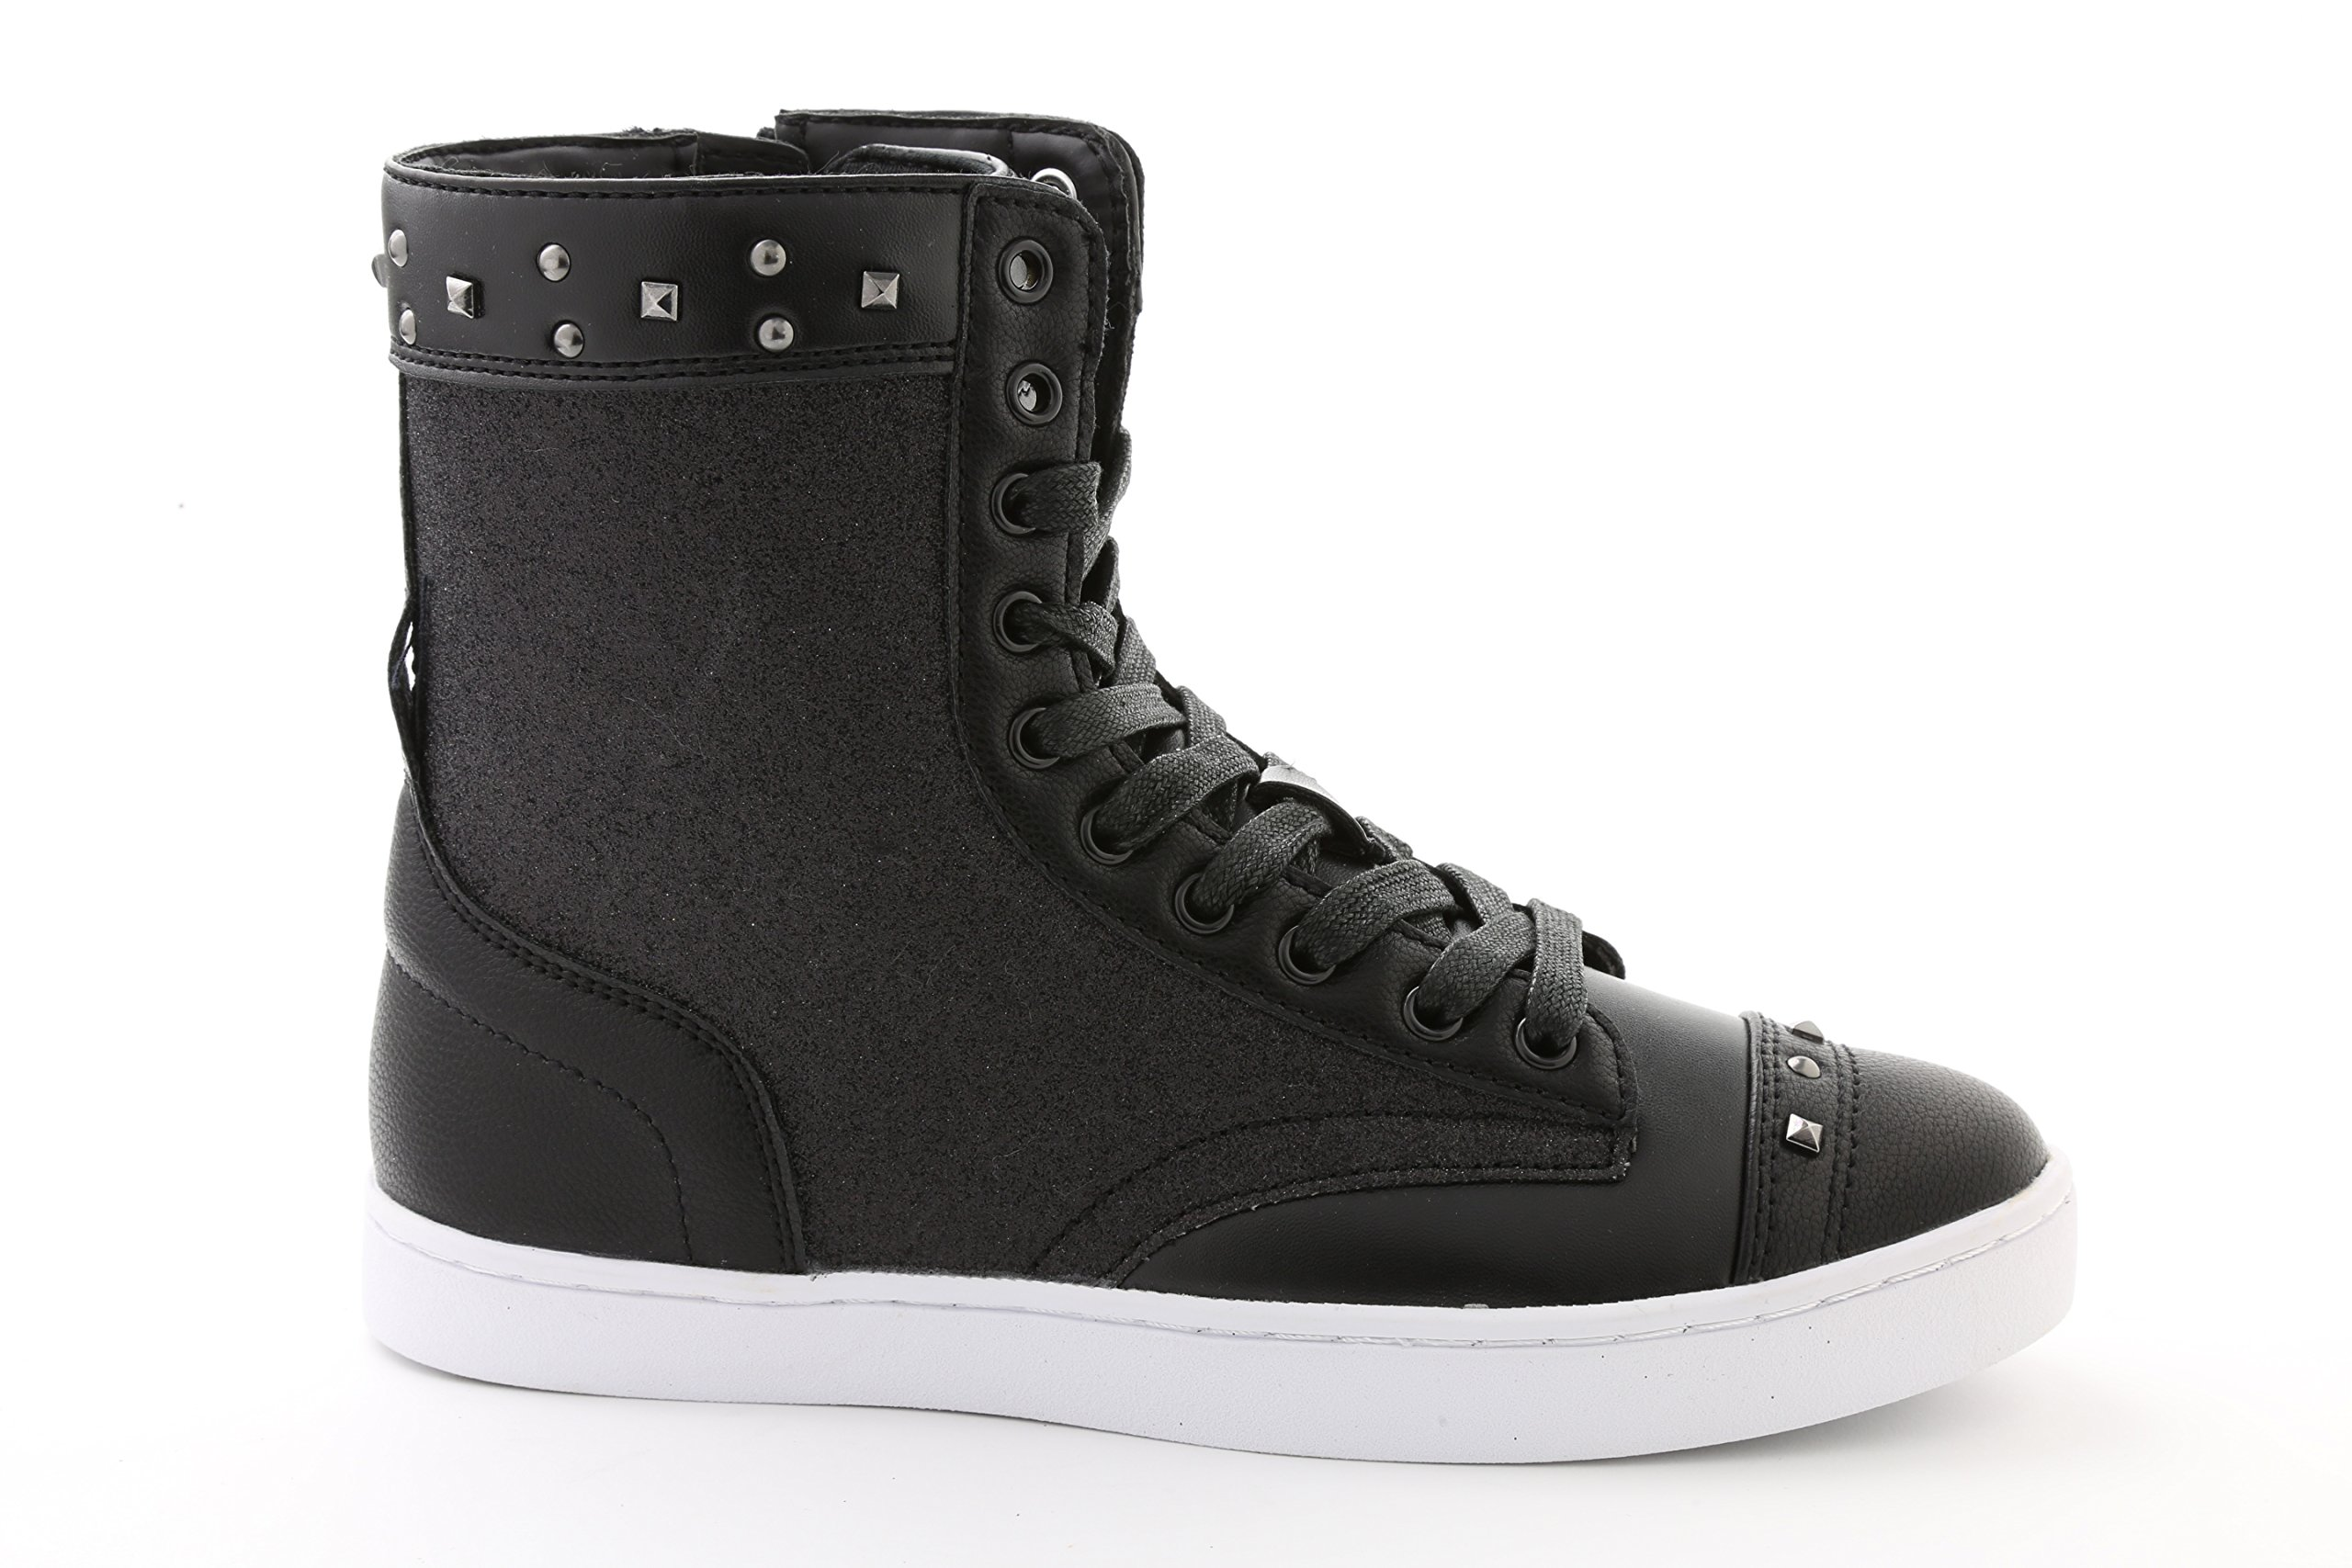 Pastry Military Glitz Adult Dance Sneaker, Black/White, Size 11 by Pastry